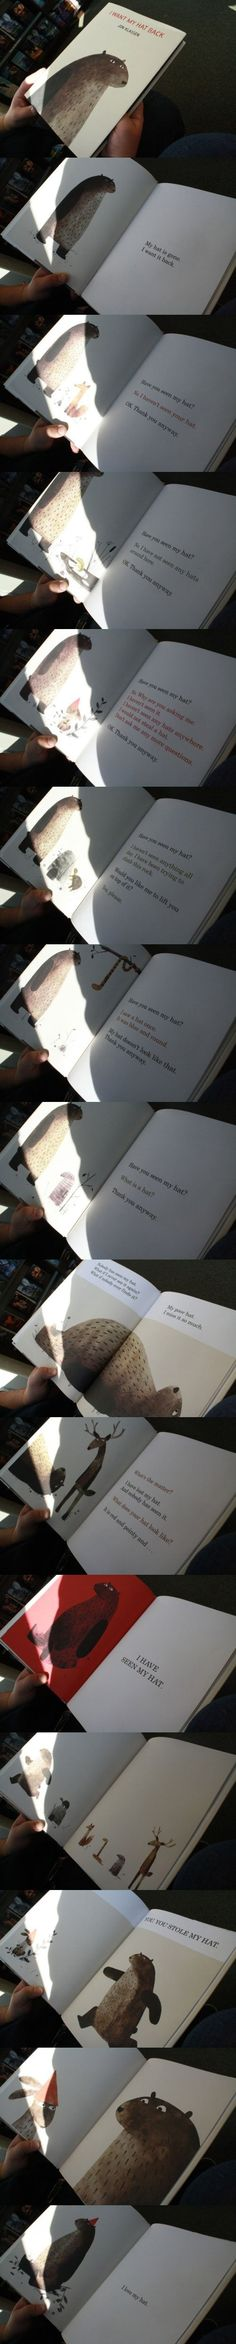 I want my hat back - Imgur I want this book for Levi.